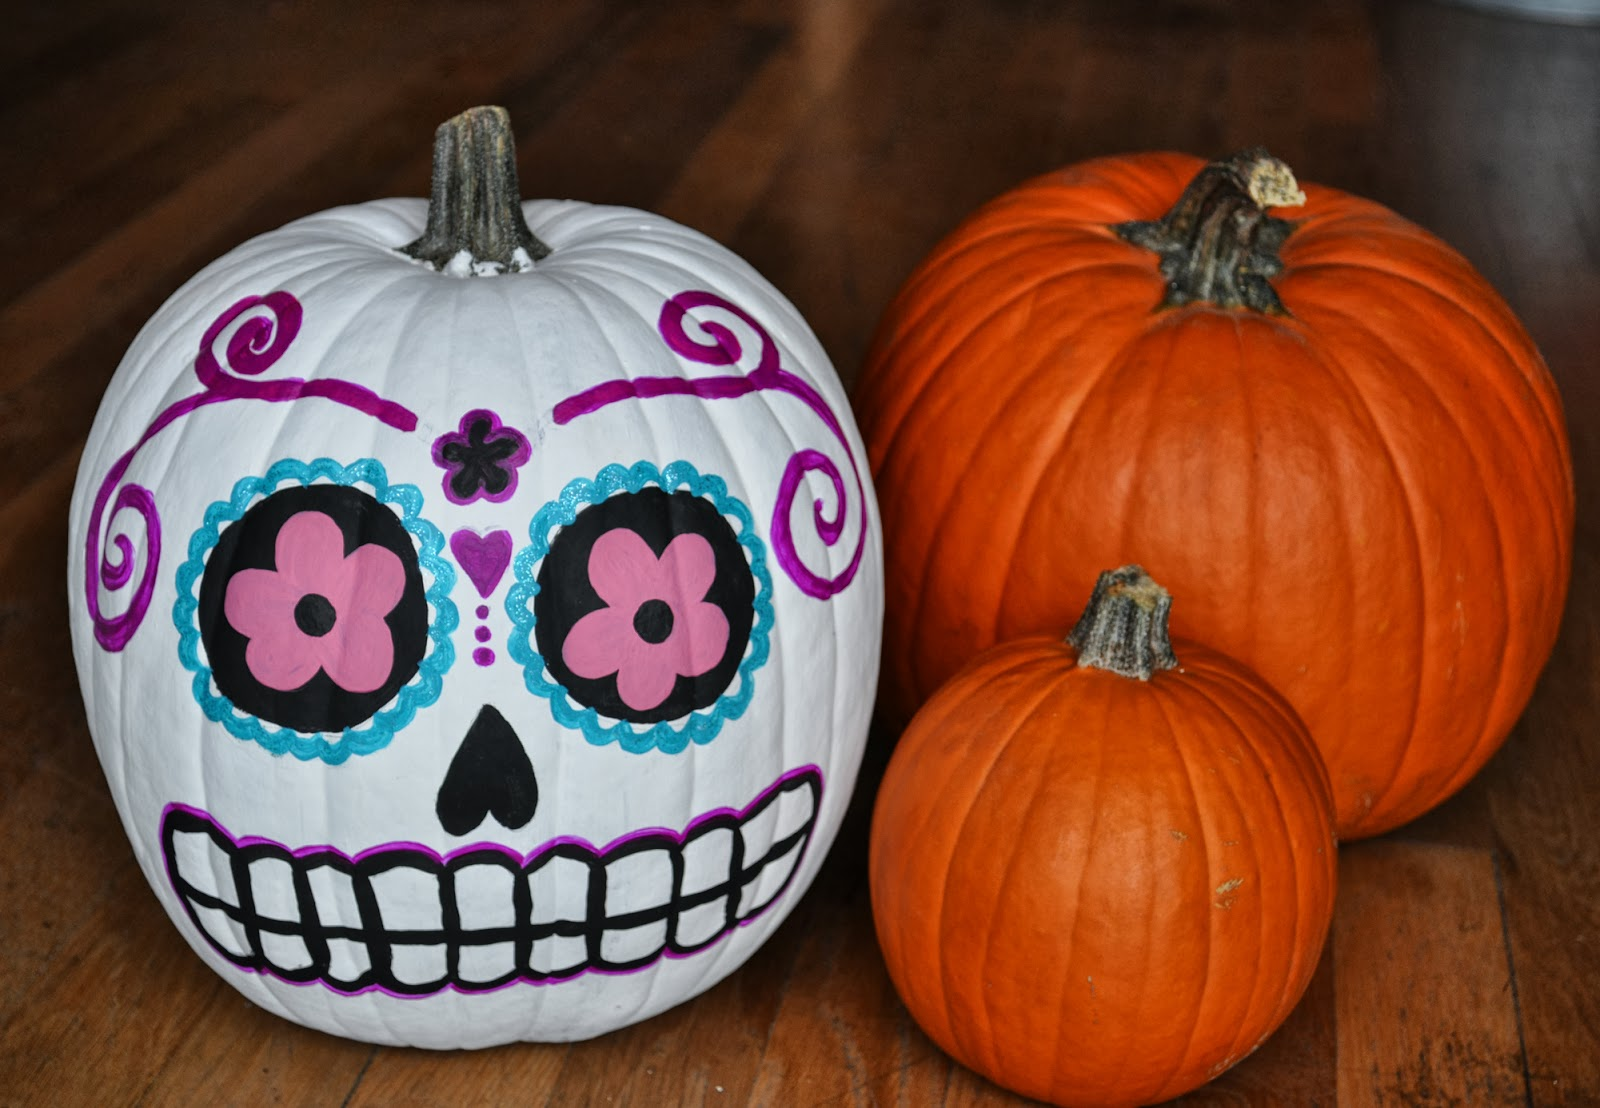 Artelexia Day Of The Dead Diy 18 Sugar Skull Pumpkins: easy pumpkin painting patterns